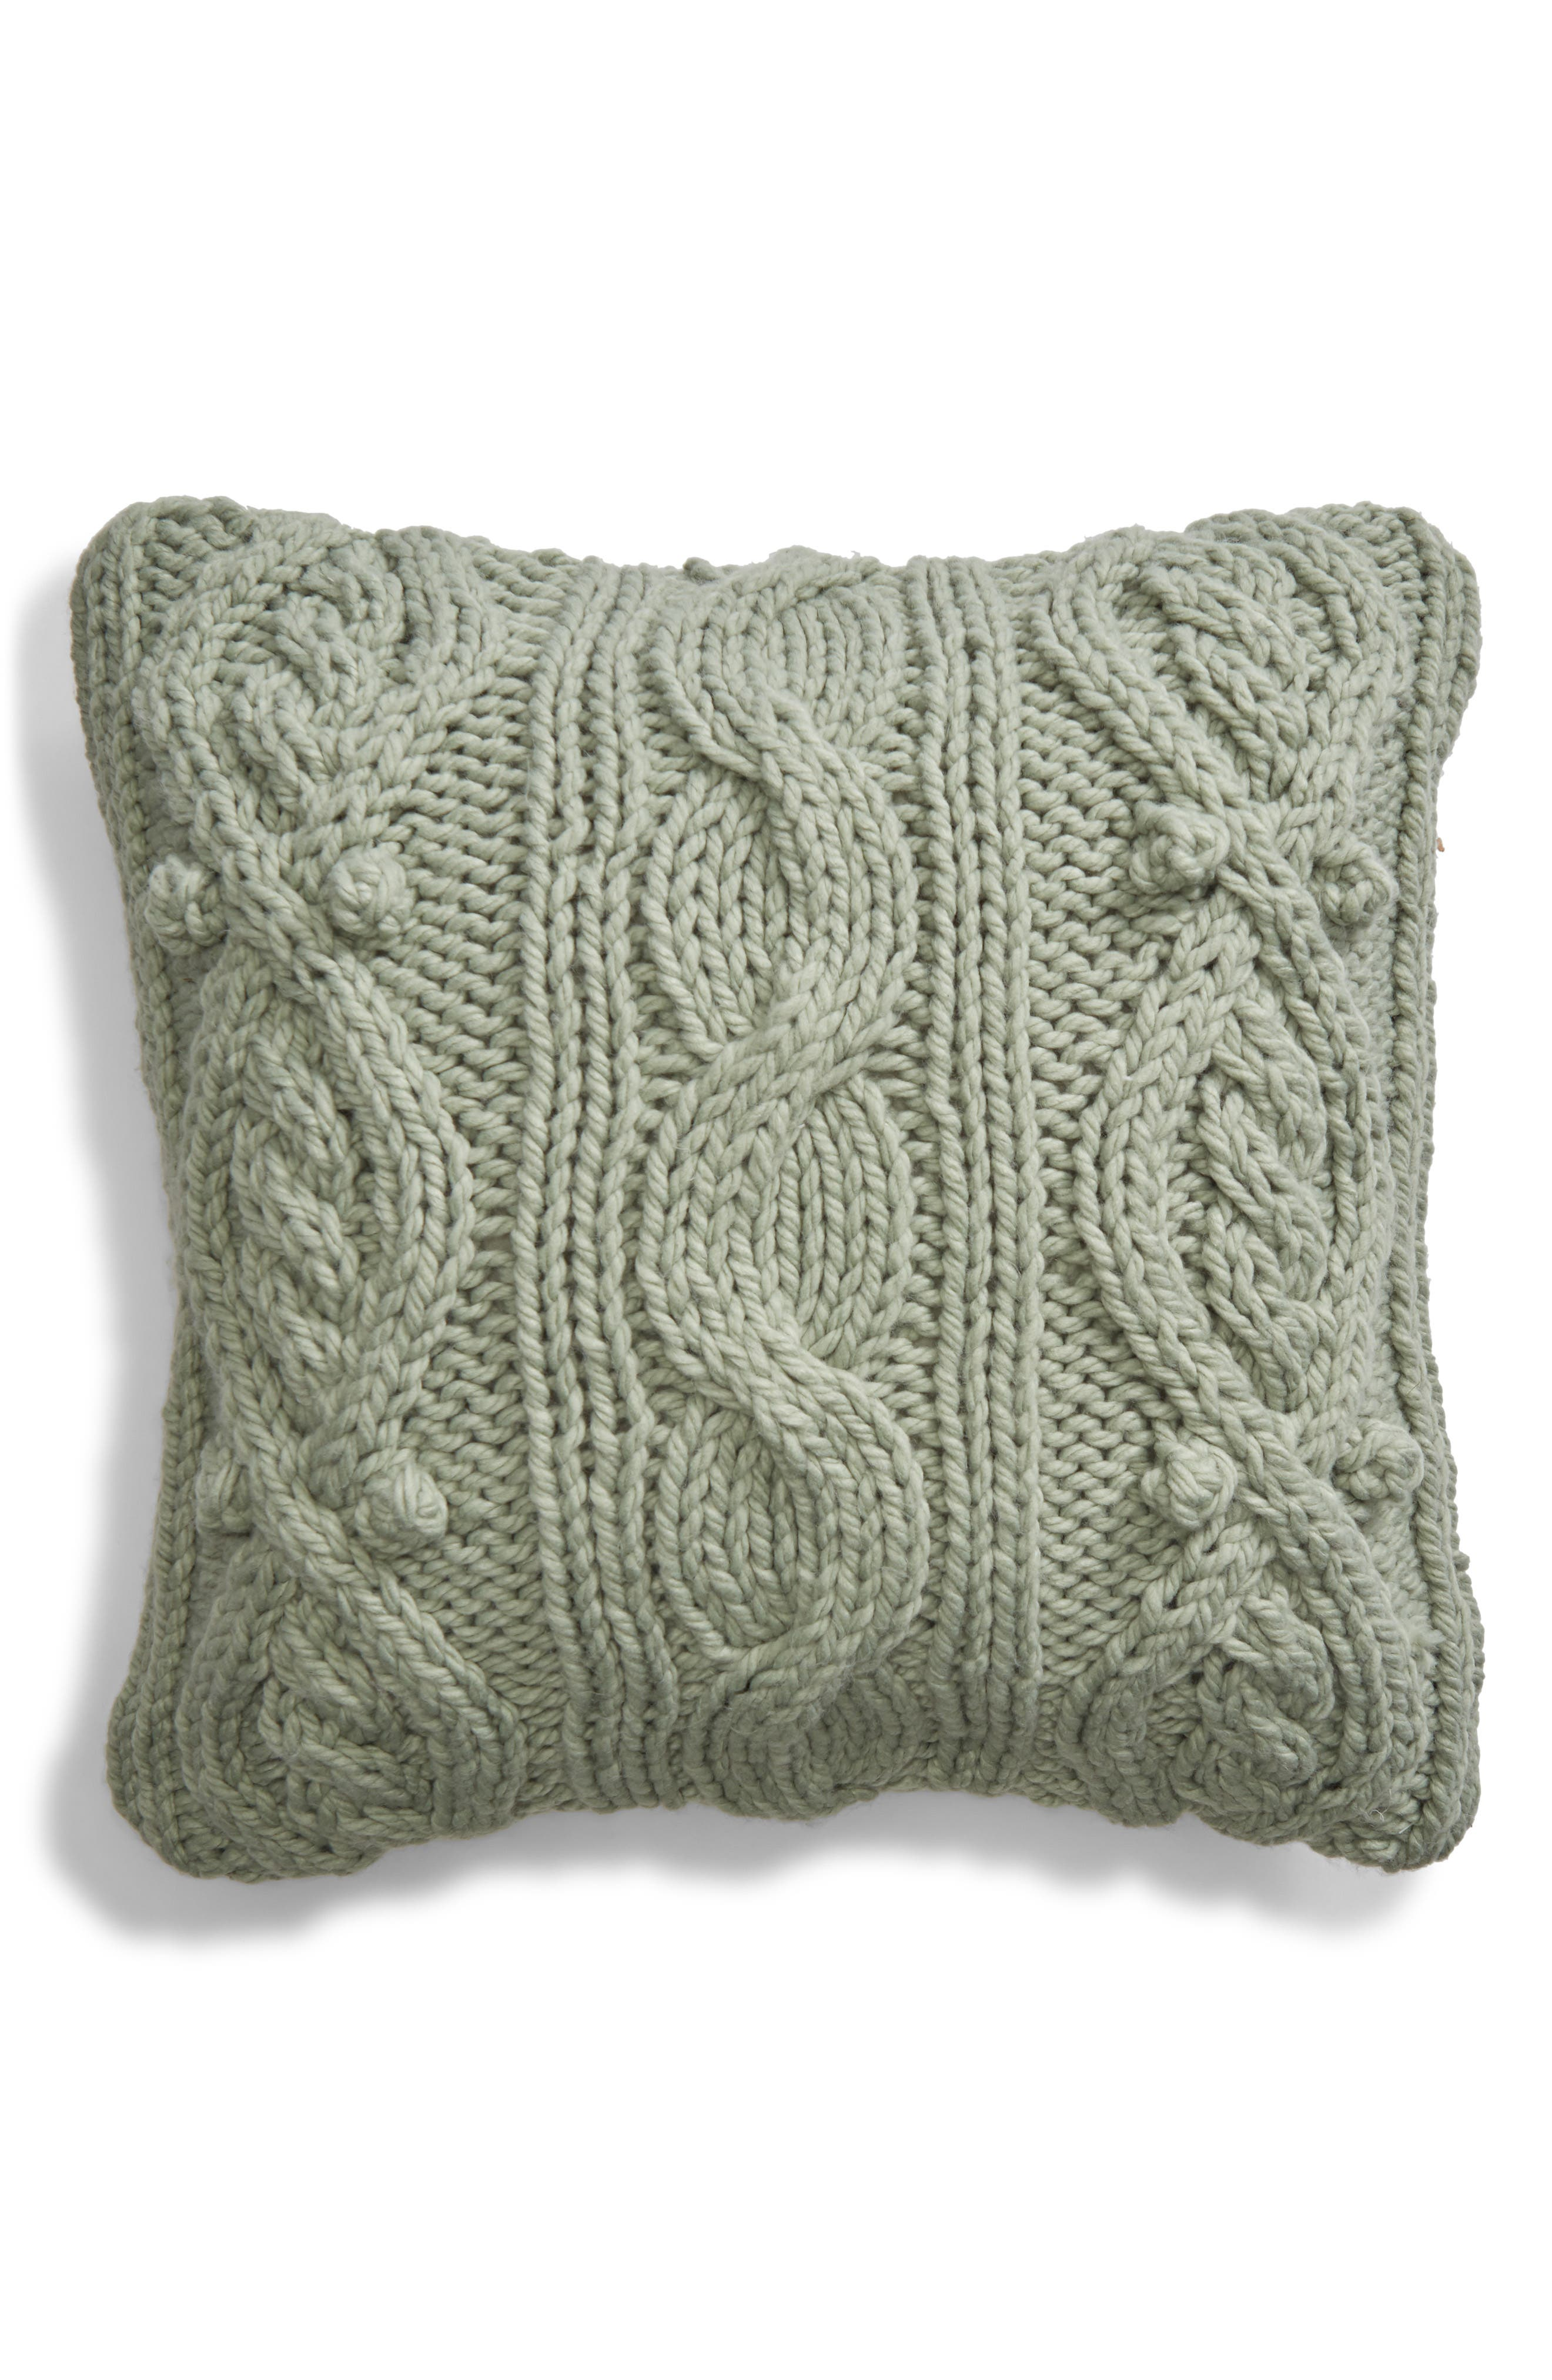 Chunky Cable Knit Accent Pillow,                             Main thumbnail 1, color,                             GREEN ICEBERG